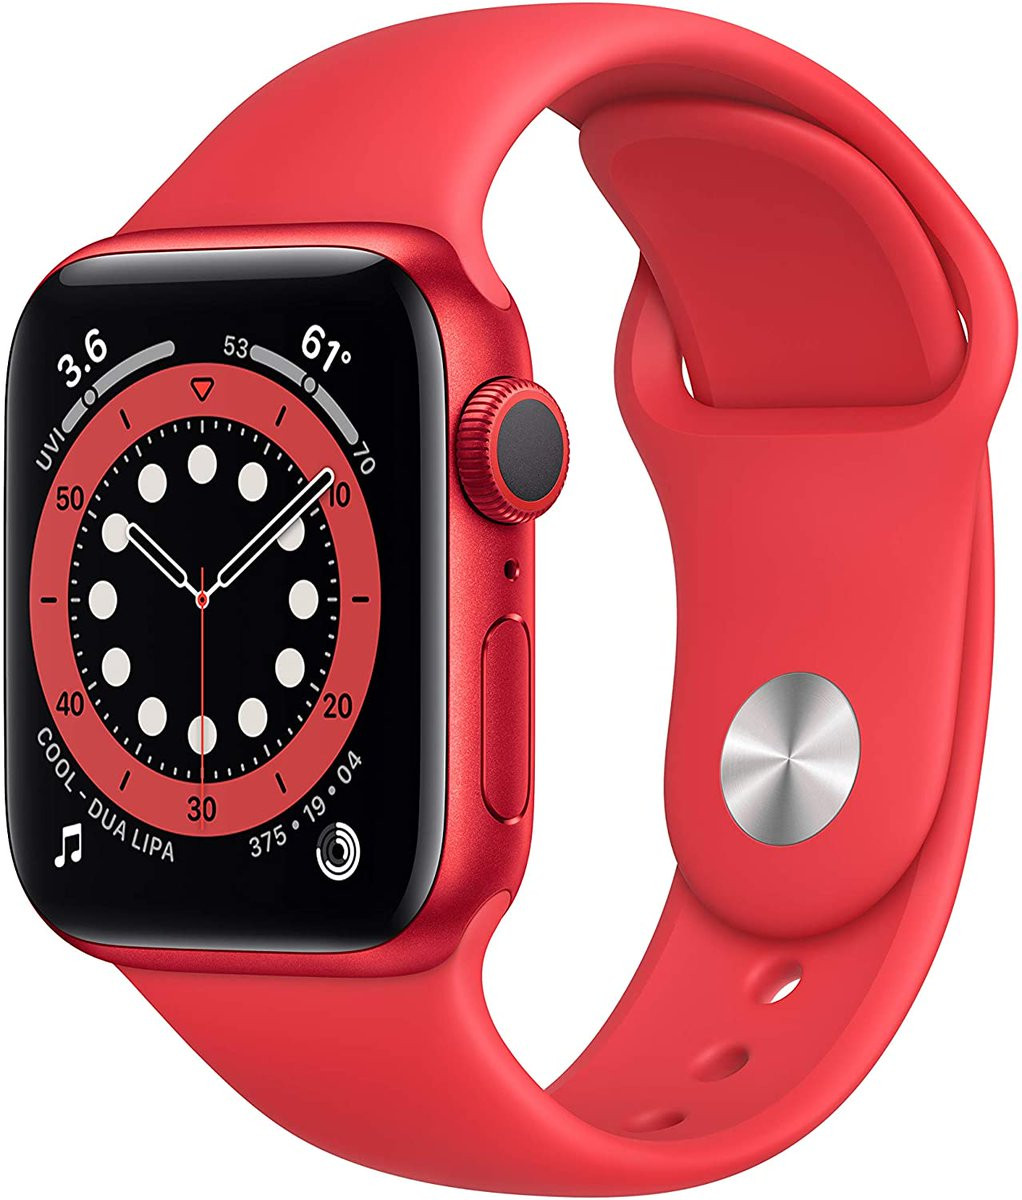 STEAL!  Get a NEW Apple Watch for as low as $169!!  38mm; https://t.co/X4RuU1ZUQa 42mm for $199; https://t.co/RRwkYHiGVB  Series 6, 40mm, $339; https://t.co/V0o1EdCQaS https://t.co/QM3dEGcZqs